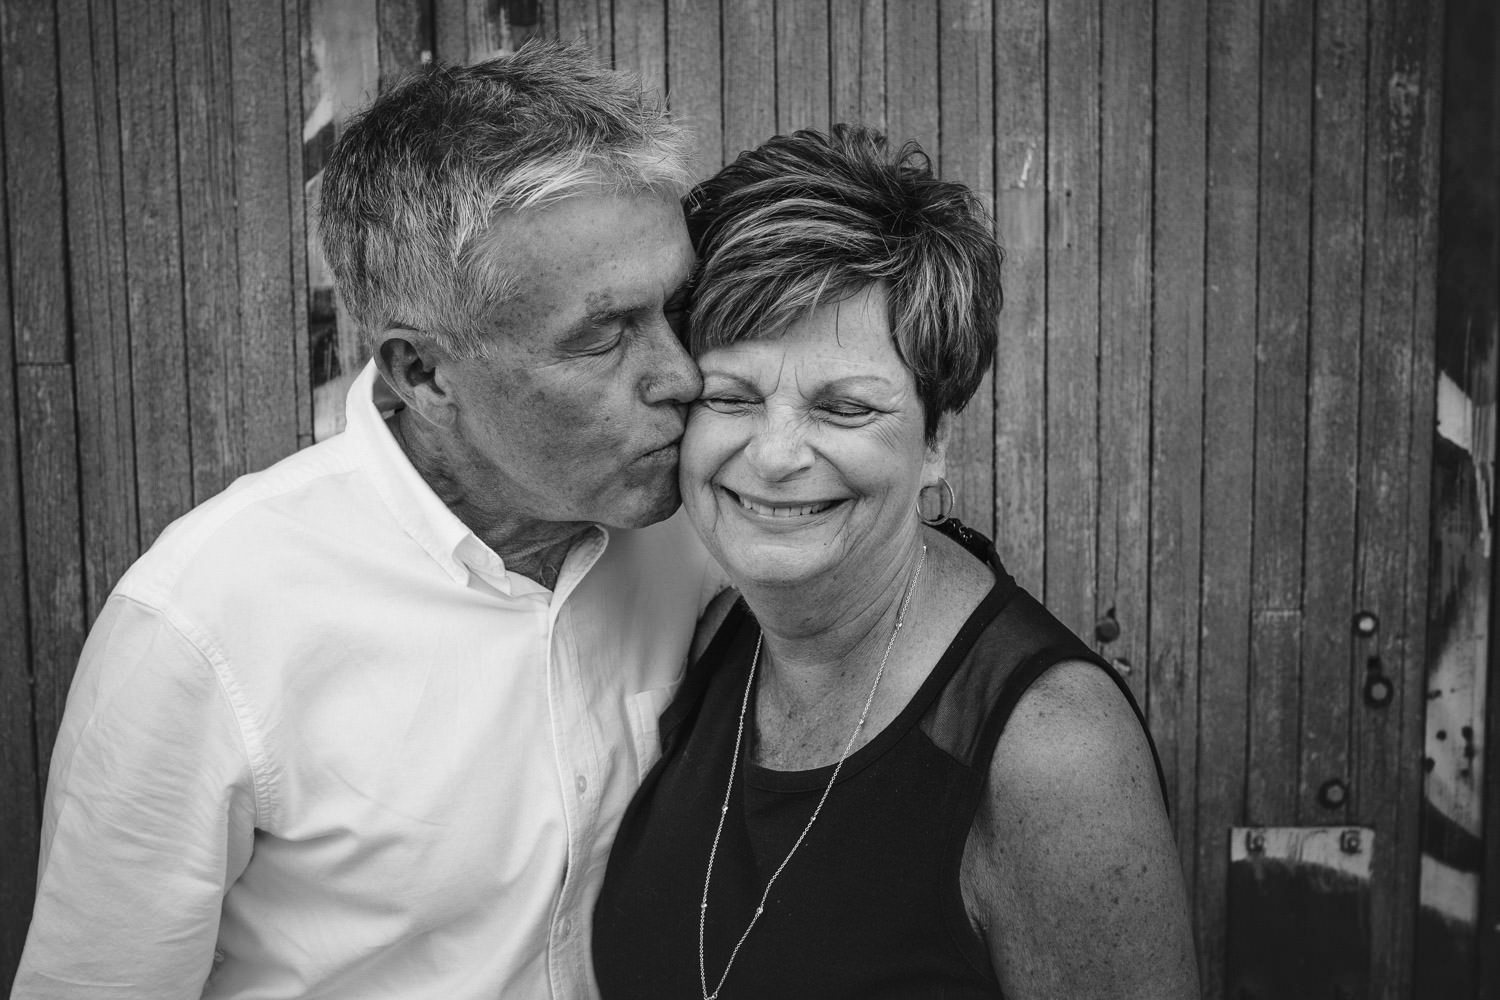 Man kissing woman on cheek black and white image